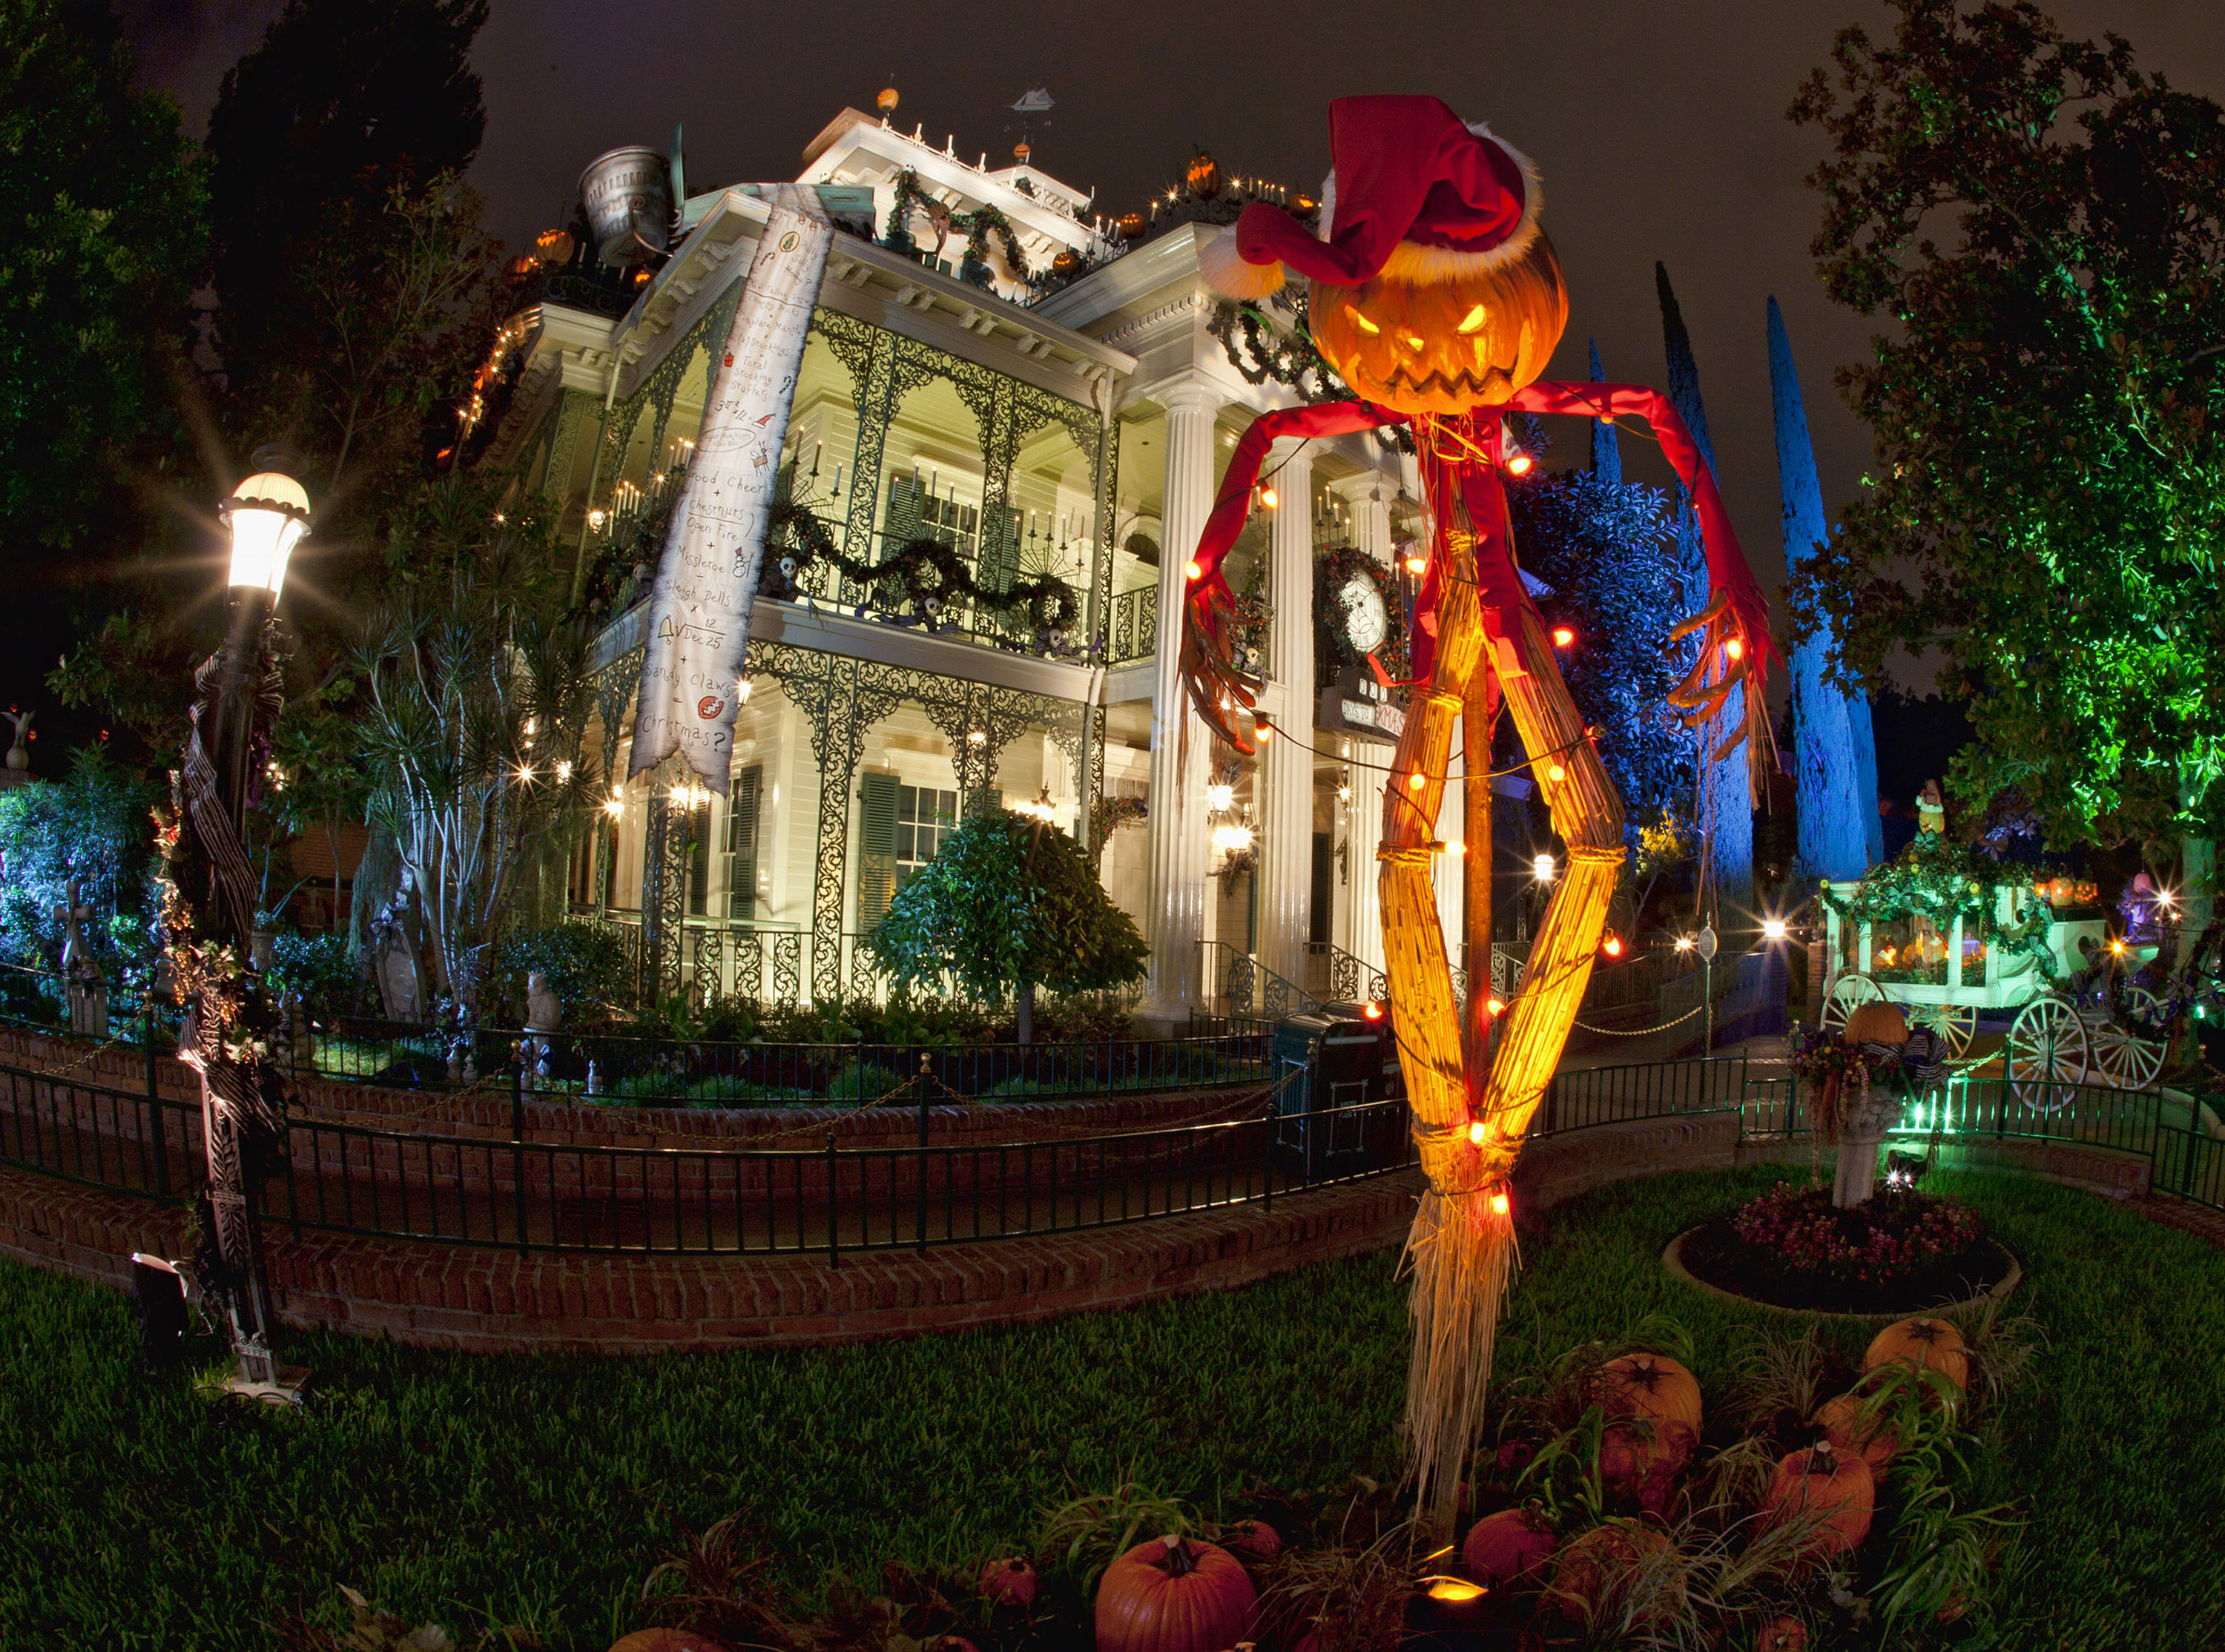 "HALLOWEEN TIME AT THE DISNEYLAND RESORT (ANAHEIM, Calif.) – Haunted Mansion Holiday brings the frightfully fun cheer of ""Tim Burton's Nightmare Before Christmas"" to the Disneyland Resort. Halloween Time at the Disneyland Resort returns from Sept. 7 through Oct. 31, 2018 with spooky seasonal décor, themed food and beverage offerings and attractions that get a seasonal overlay for Halloween (Paul Hiffmeyer/Disneyland)"